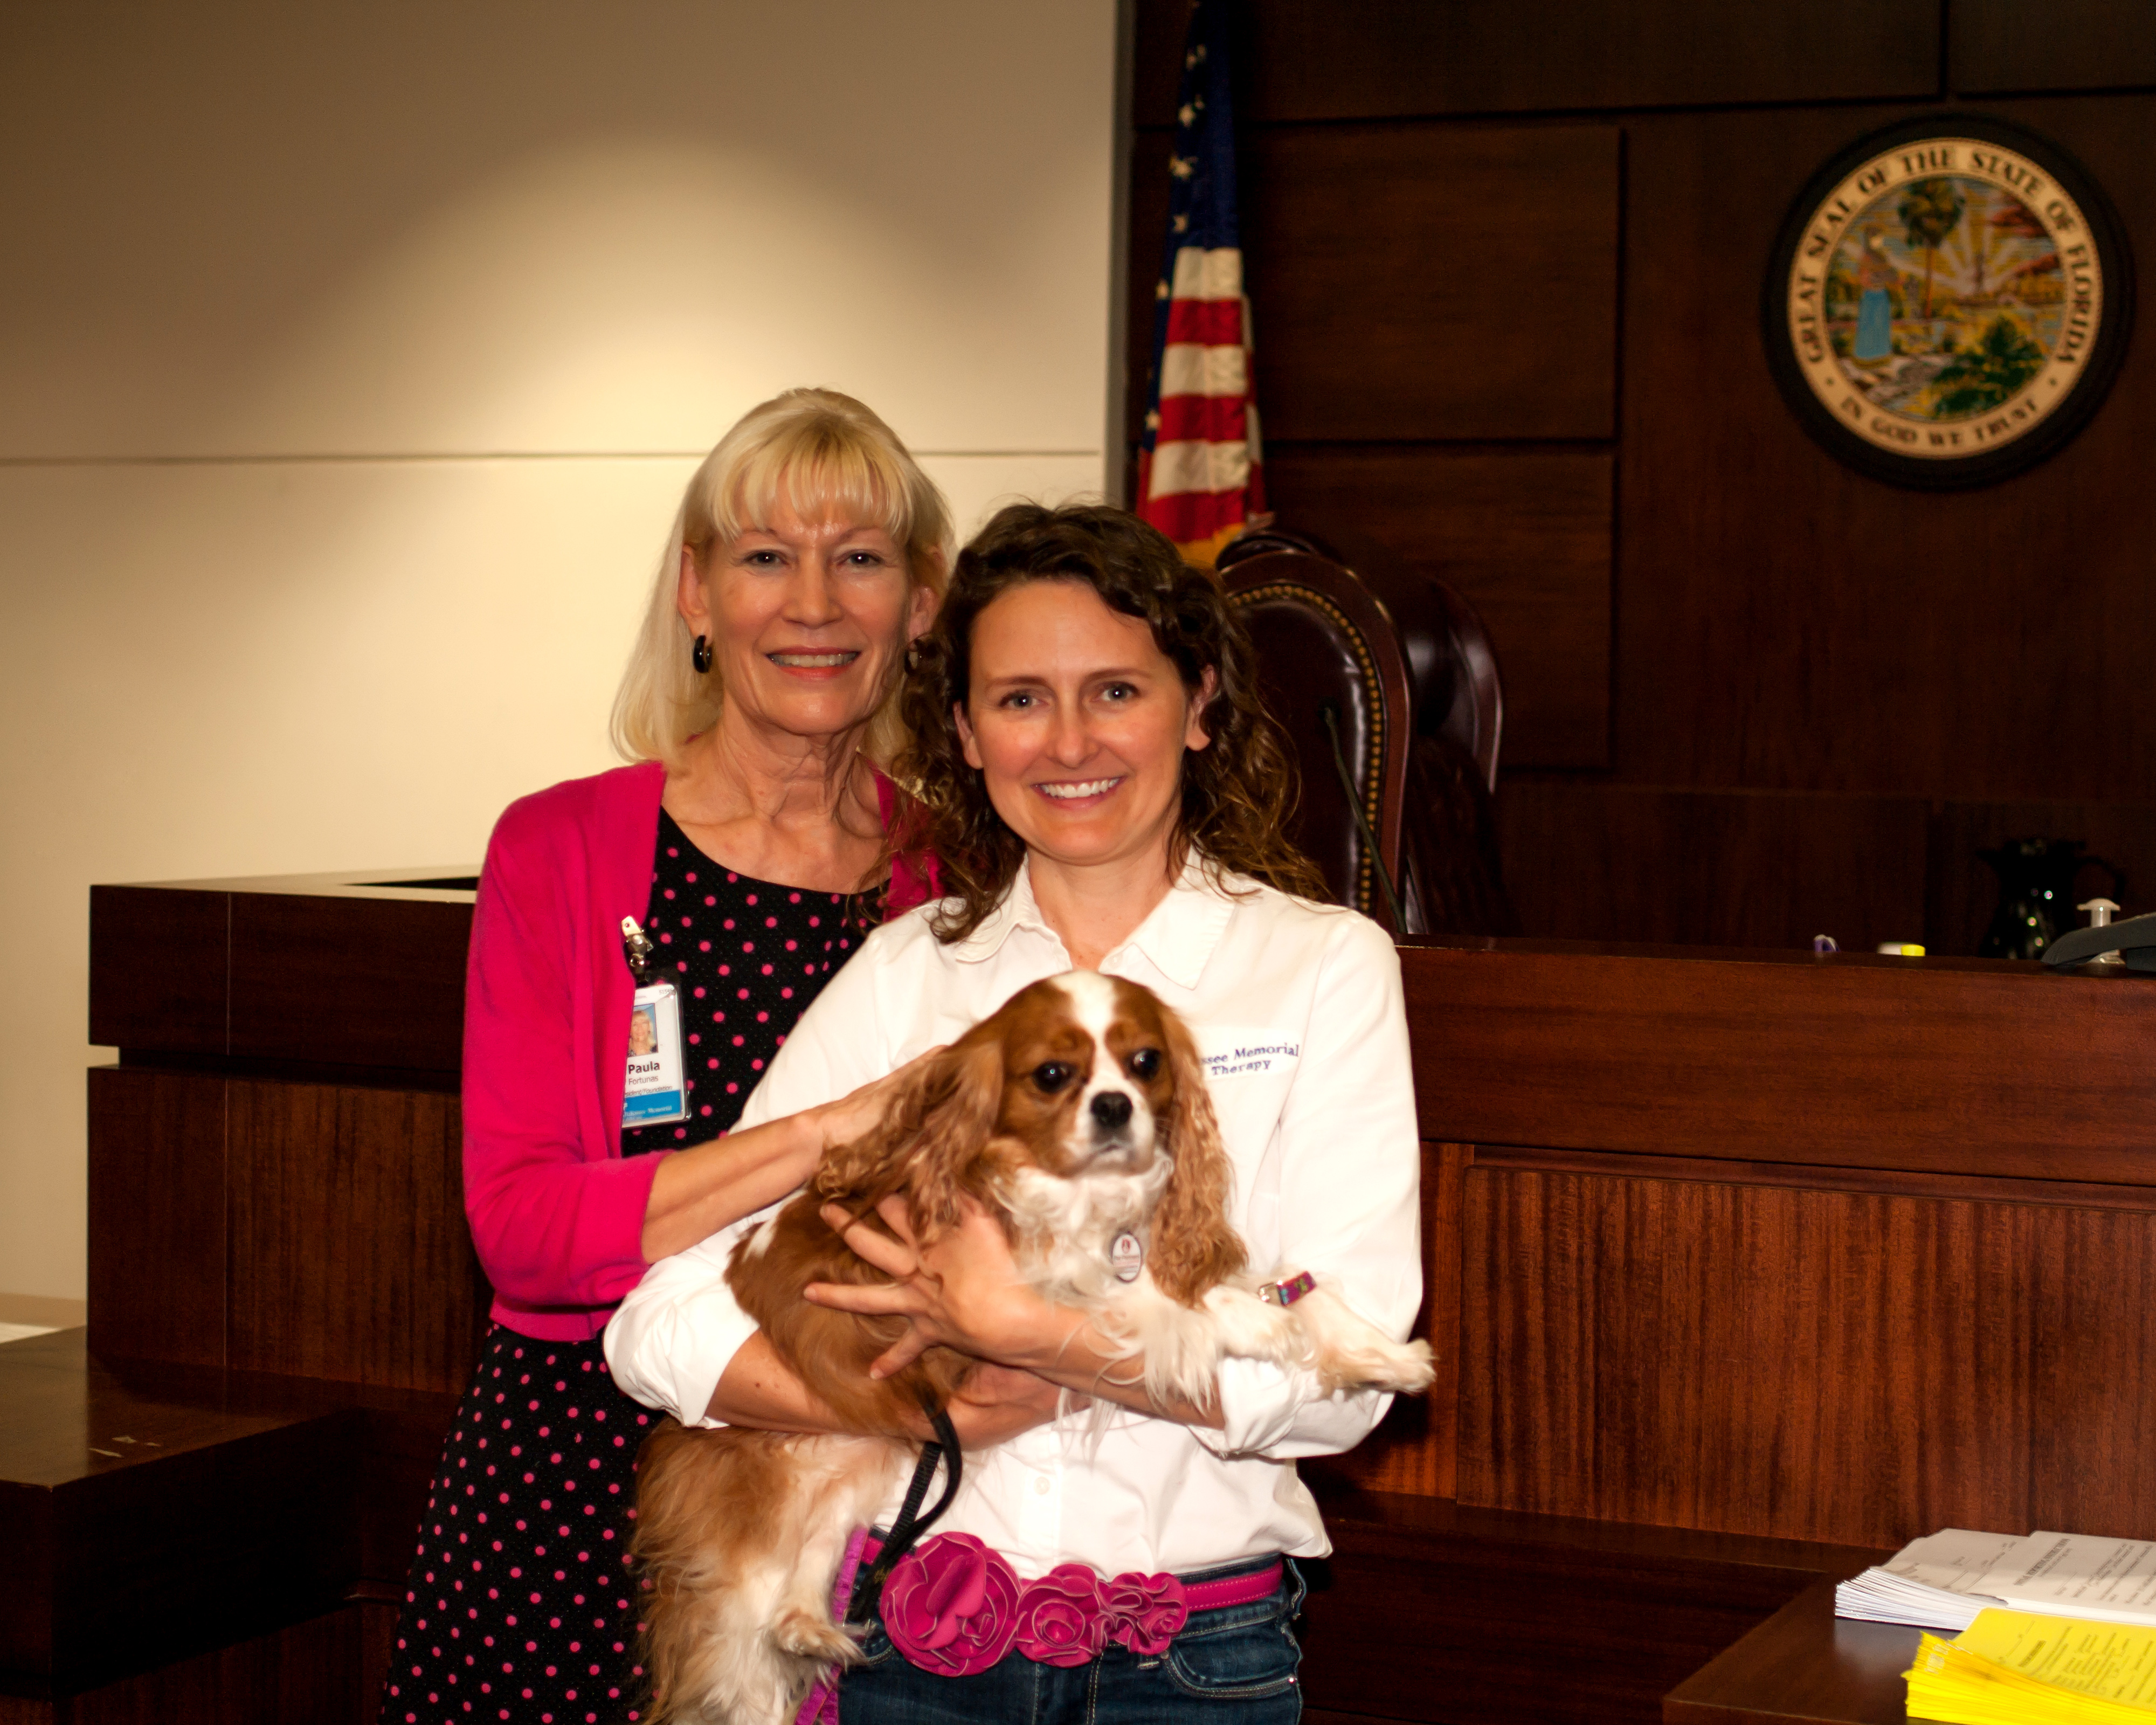 Tallahassee Memorial Animal Therapy Program Coordinator Stephanie Perkins Smiles with her dog and friend in the courtroom